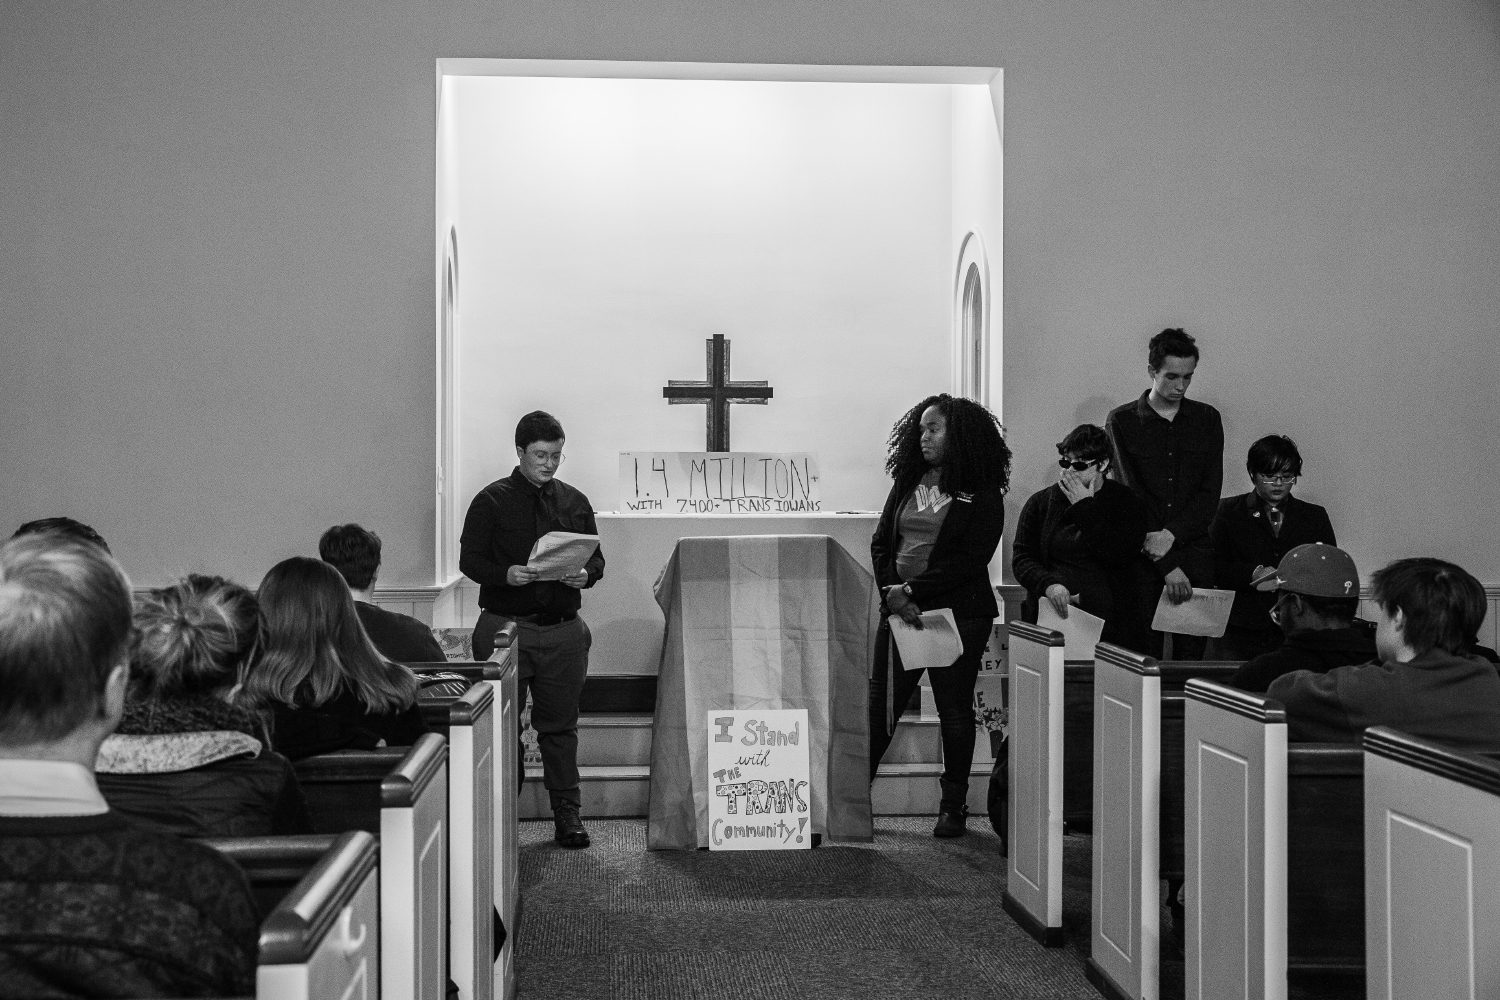 Beck+O%27Brien+reads+the+names+of+trans+people+who+have+died+in+2018+at+Danforth+Chapel+on+Wednesday%2C+Nov.+14%2C+2018.+The+Trans+Day+of+Remembrance+Vigil+is+an+annual+event+thats+occurred+across+the+world+since+1999.+The+event+concluded+with+attendees+writing+messages+on+post-it+notes+that+was+turned+into+a+collage+and+will+be+displayed+at+the+LGBTQ+Resource+Center.